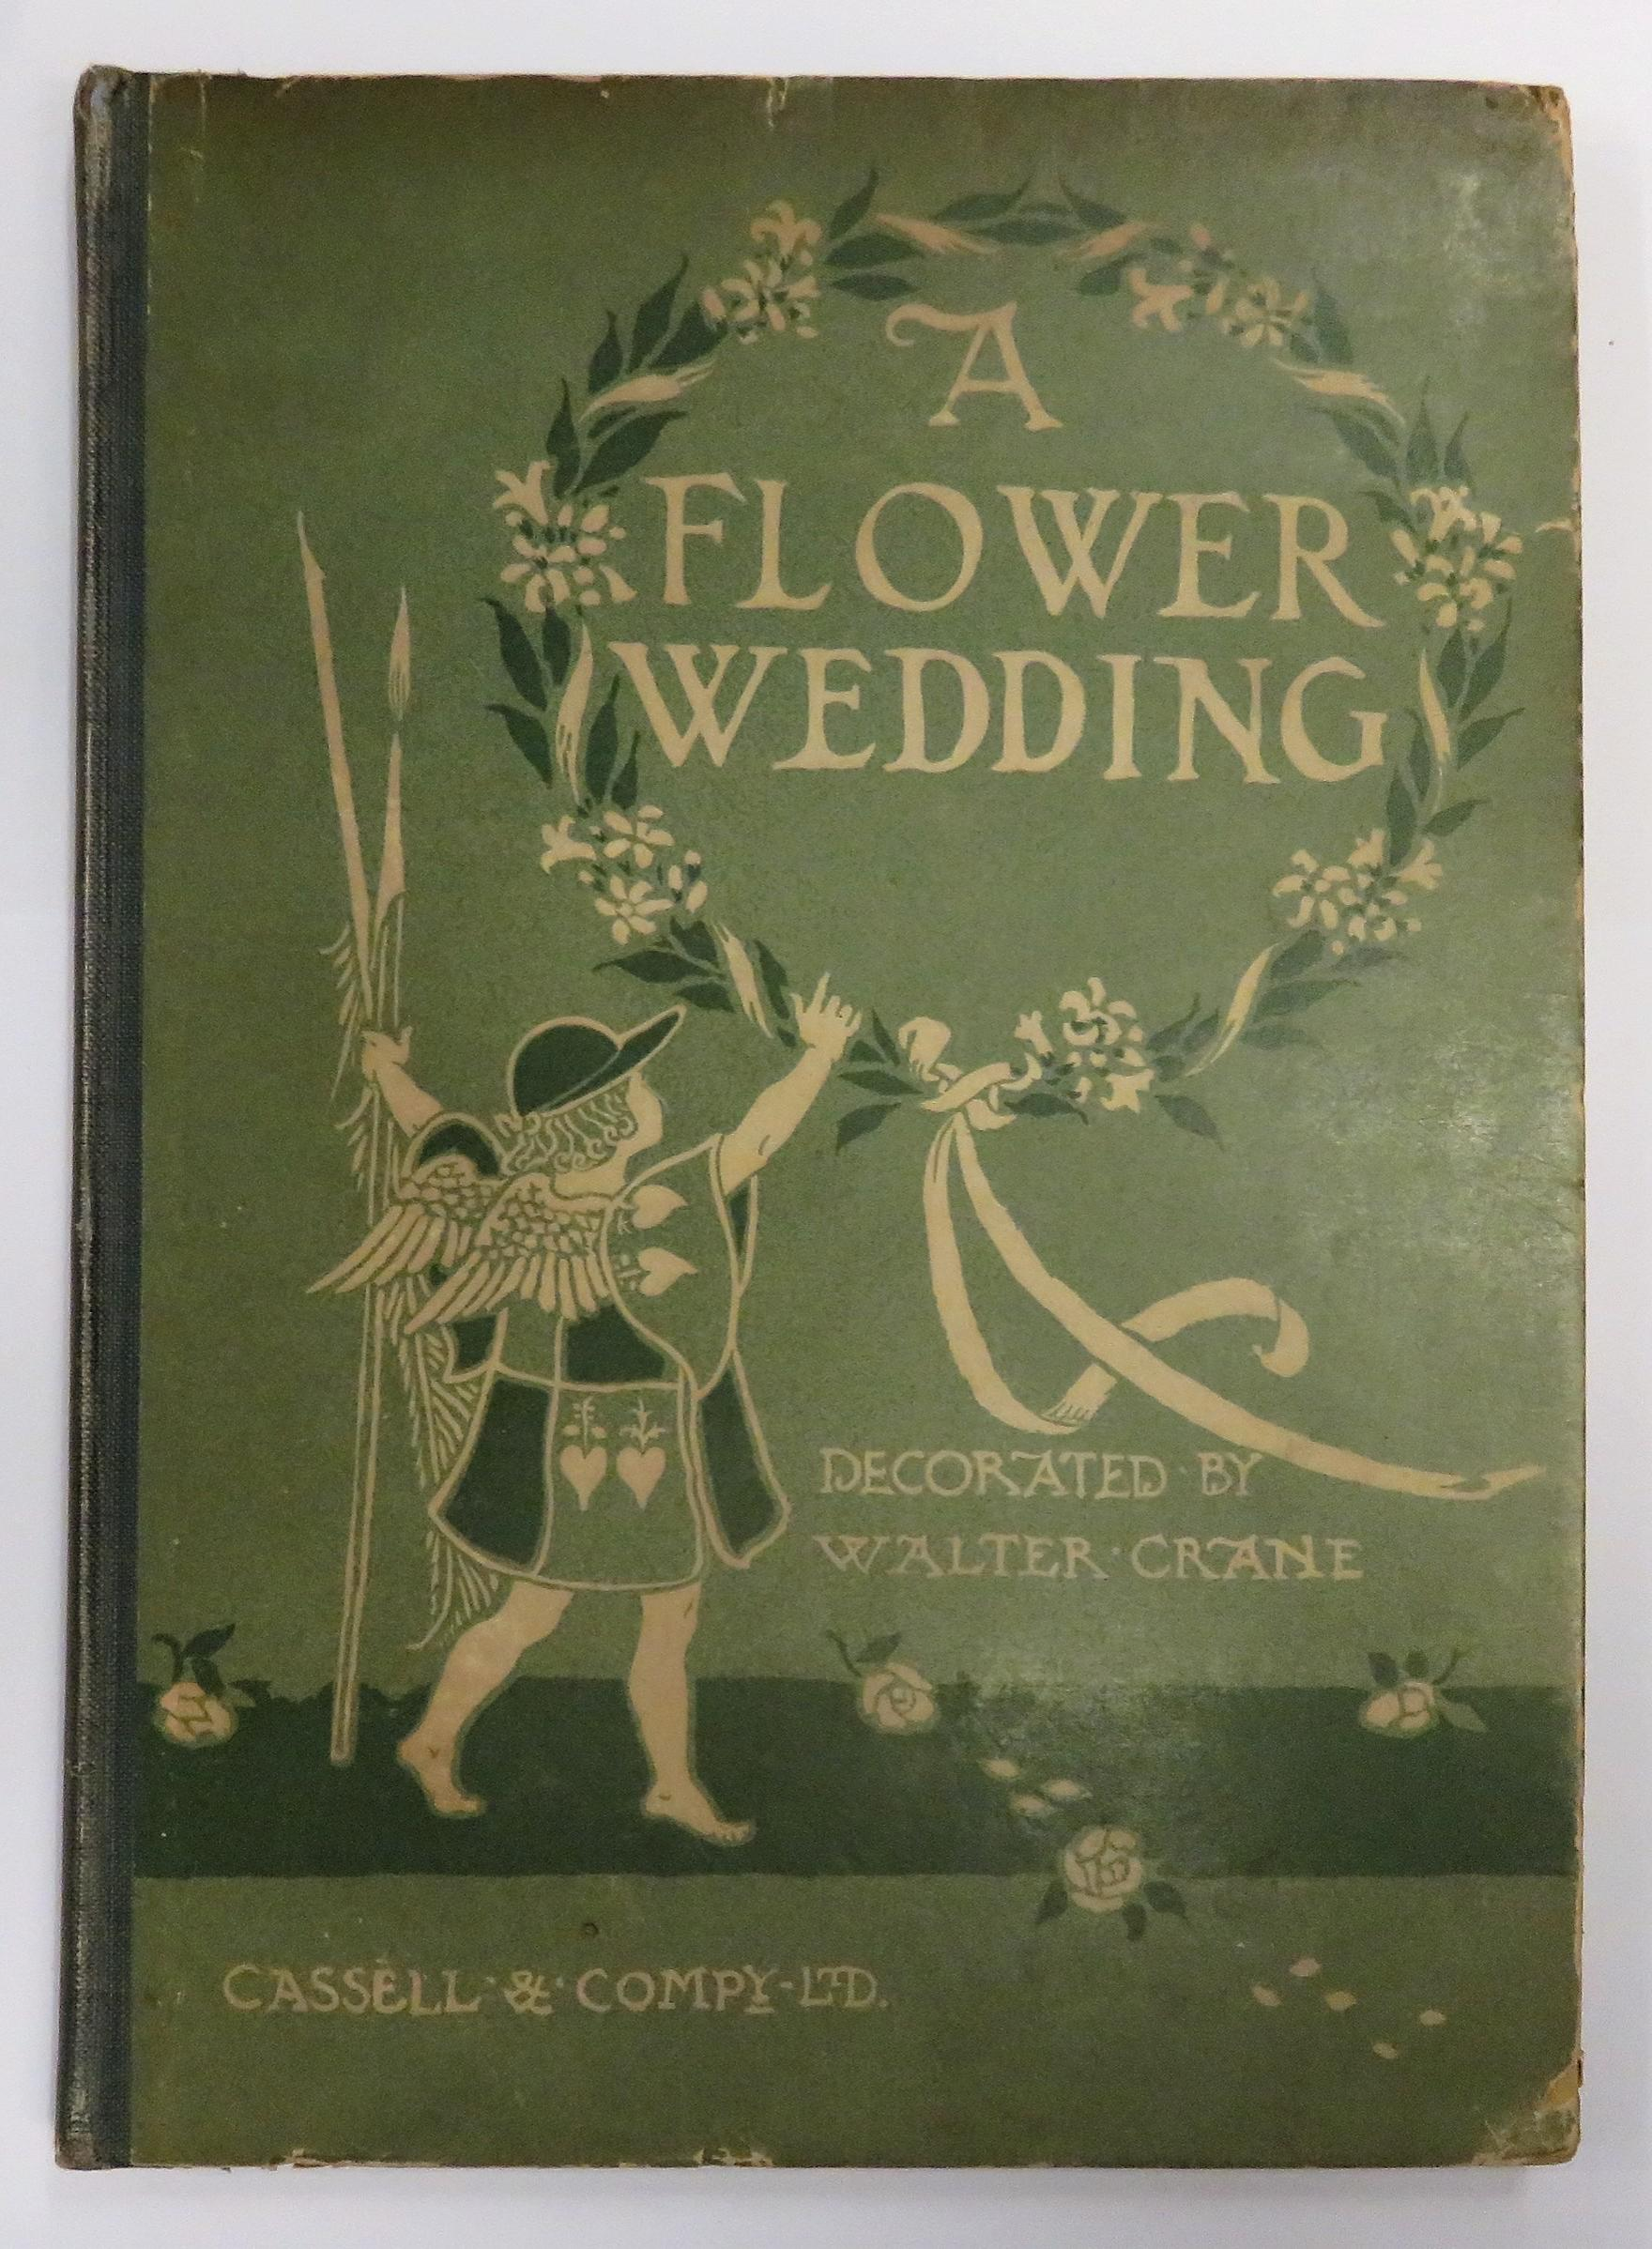 A Flower Wedding Described By Two Wallflowers Decorated By Walter Crane